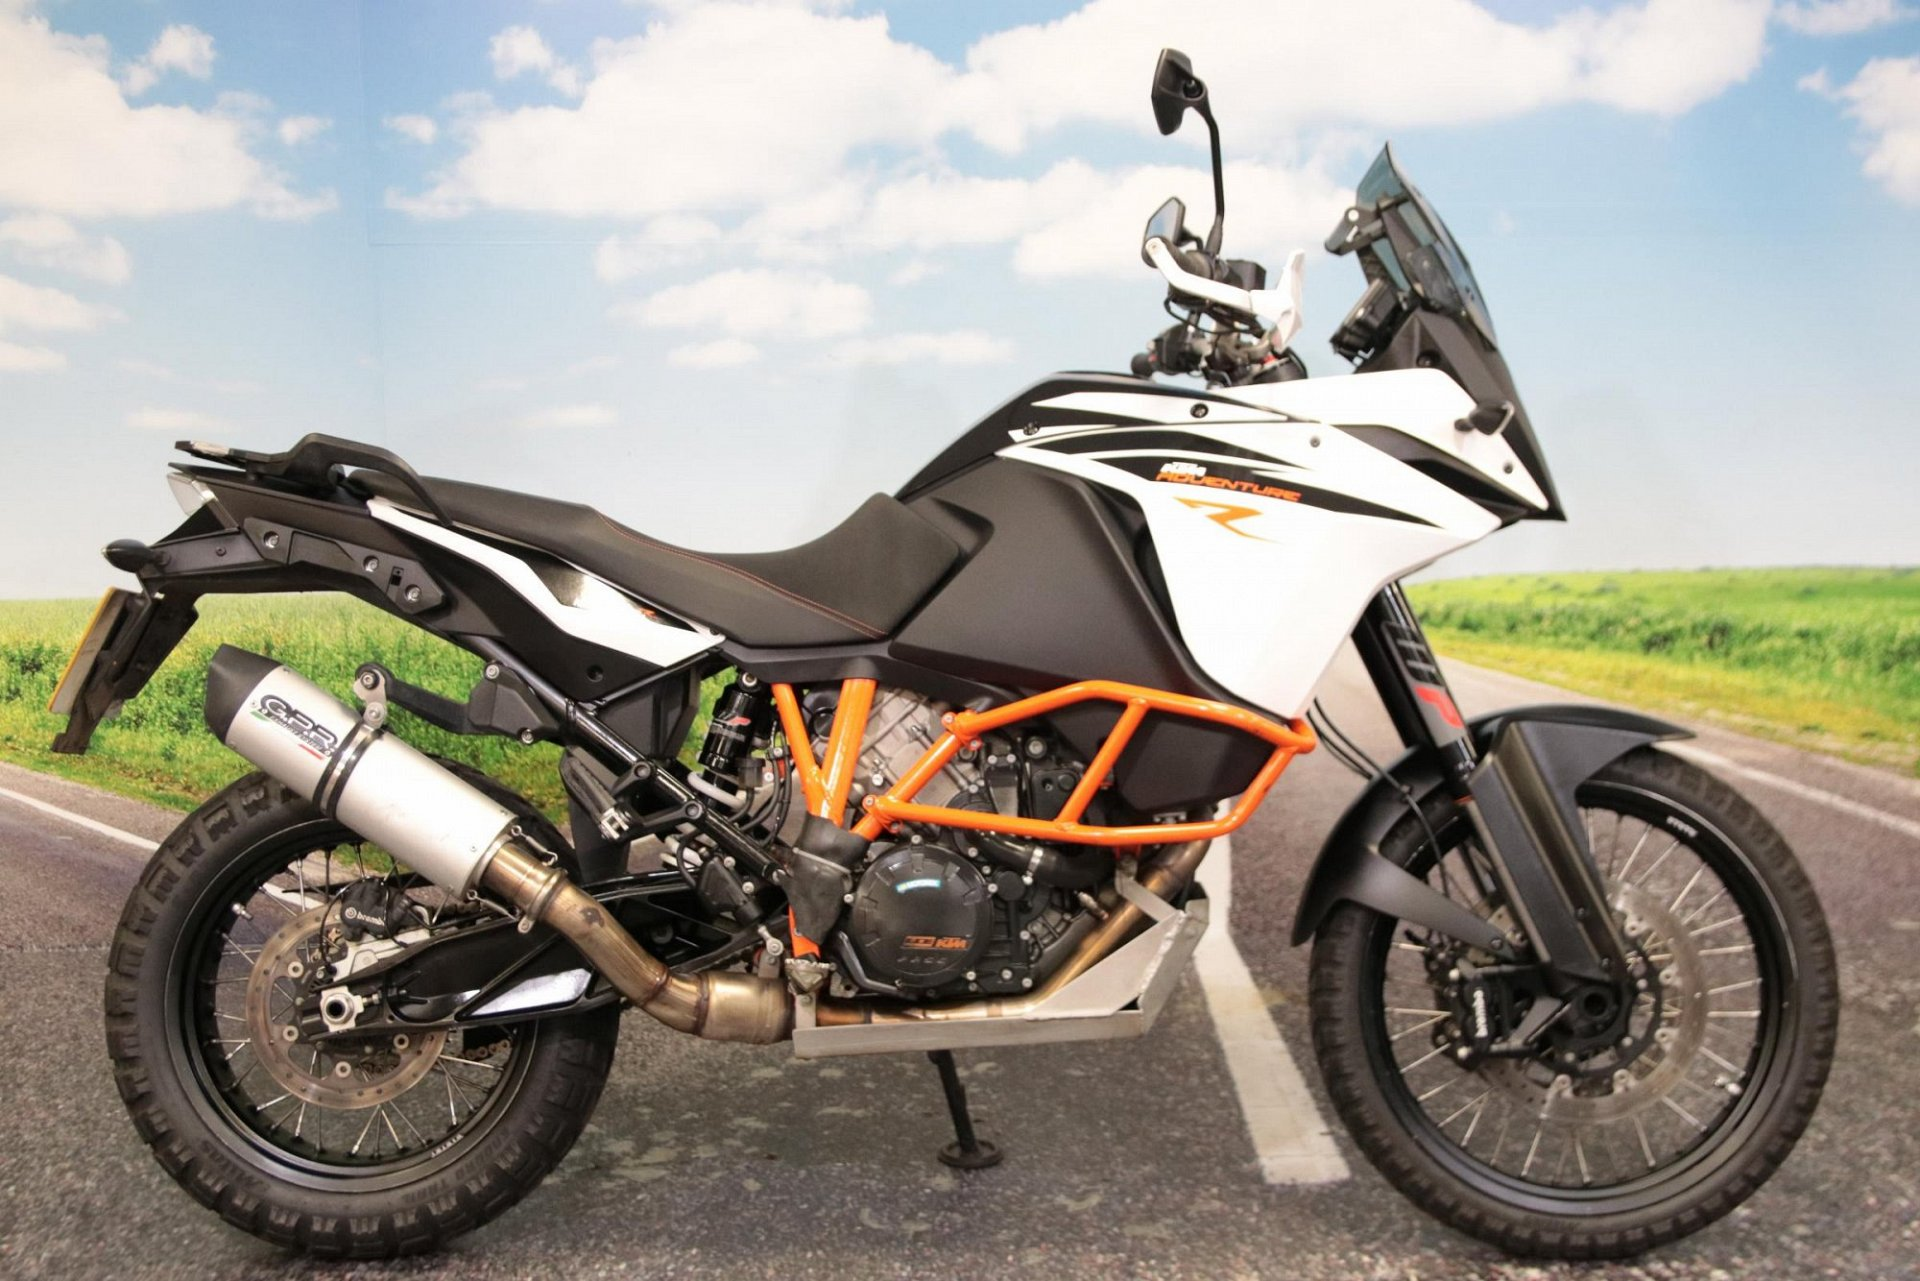 2018 KTM 1090 Adventure R for sale in South Wales